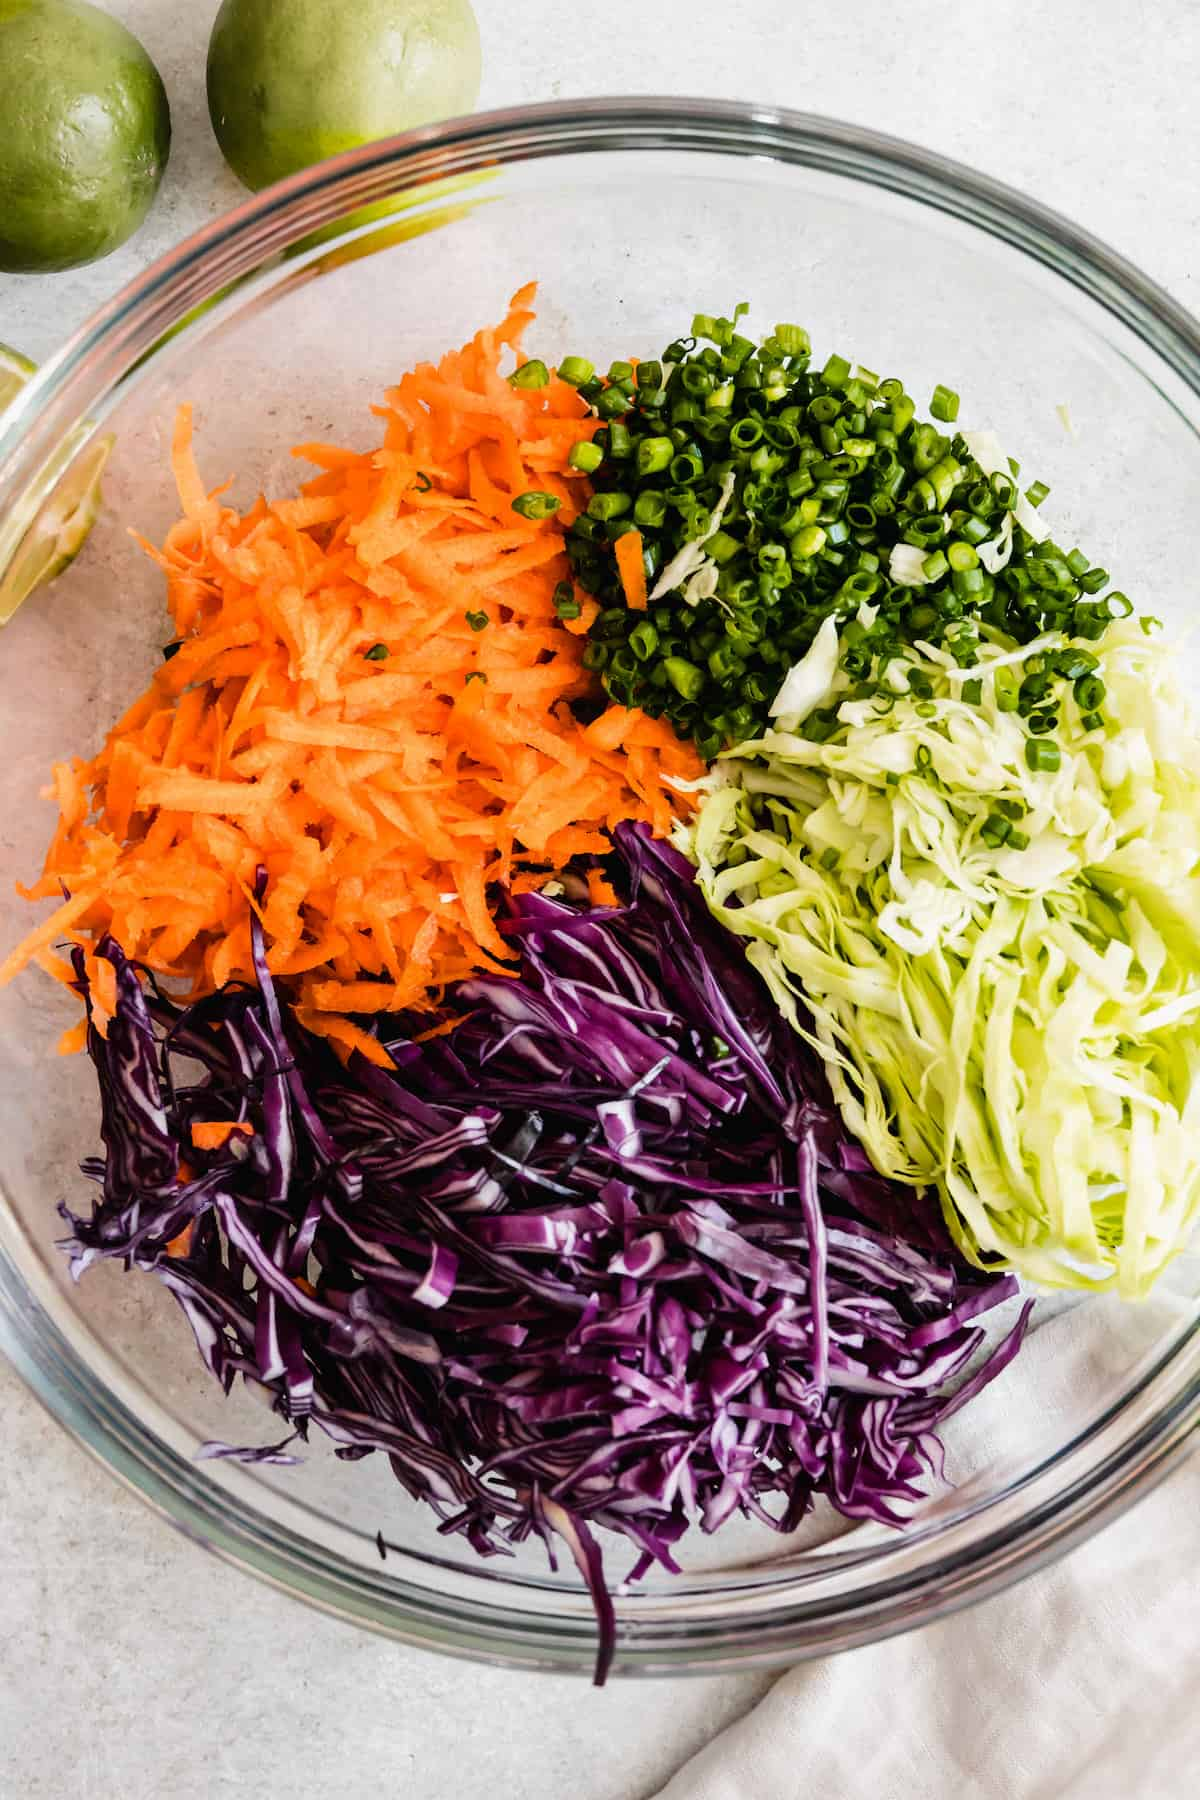 A Bowl Filled with the Cabbage Slaw Ingredients Beside Two Limes and Half of Another Lime